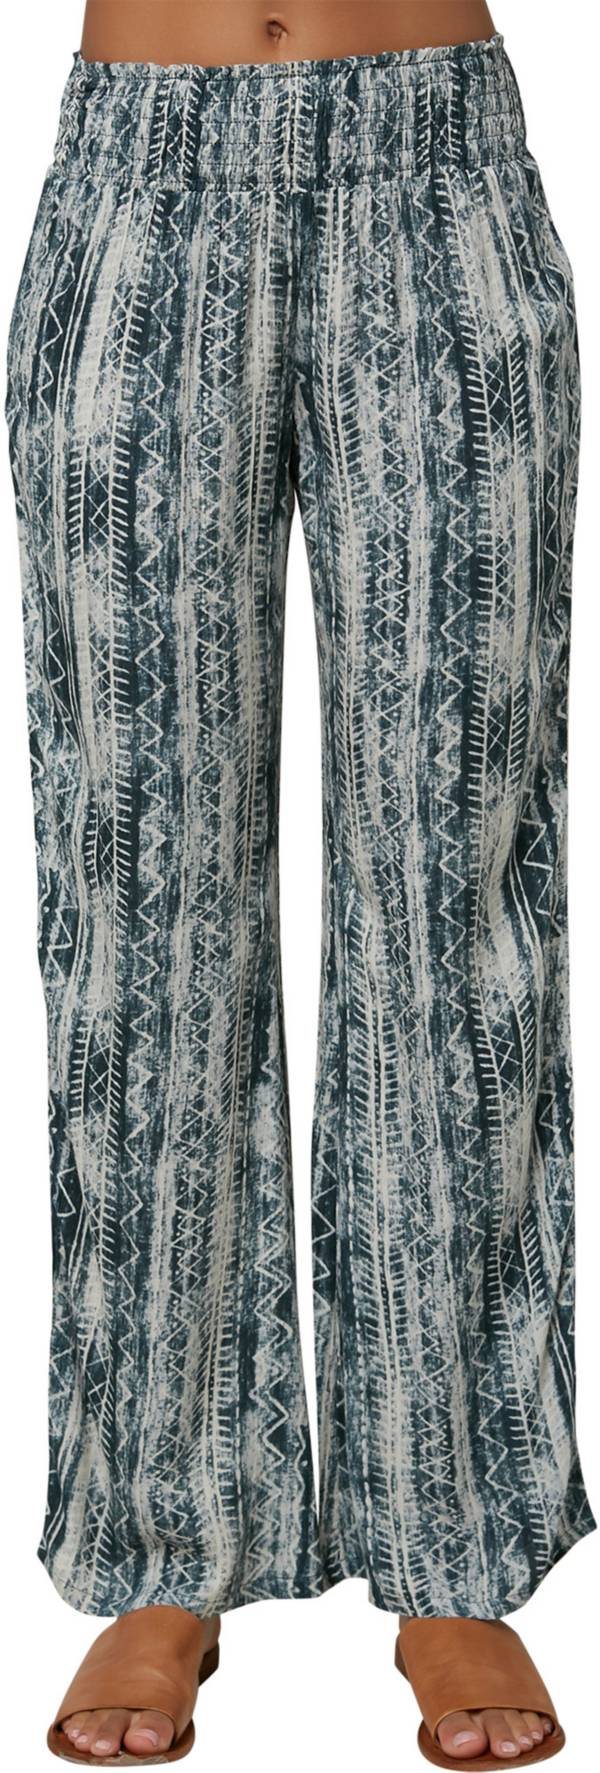 O'Neill Women's Johnny Bungalow Pants product image